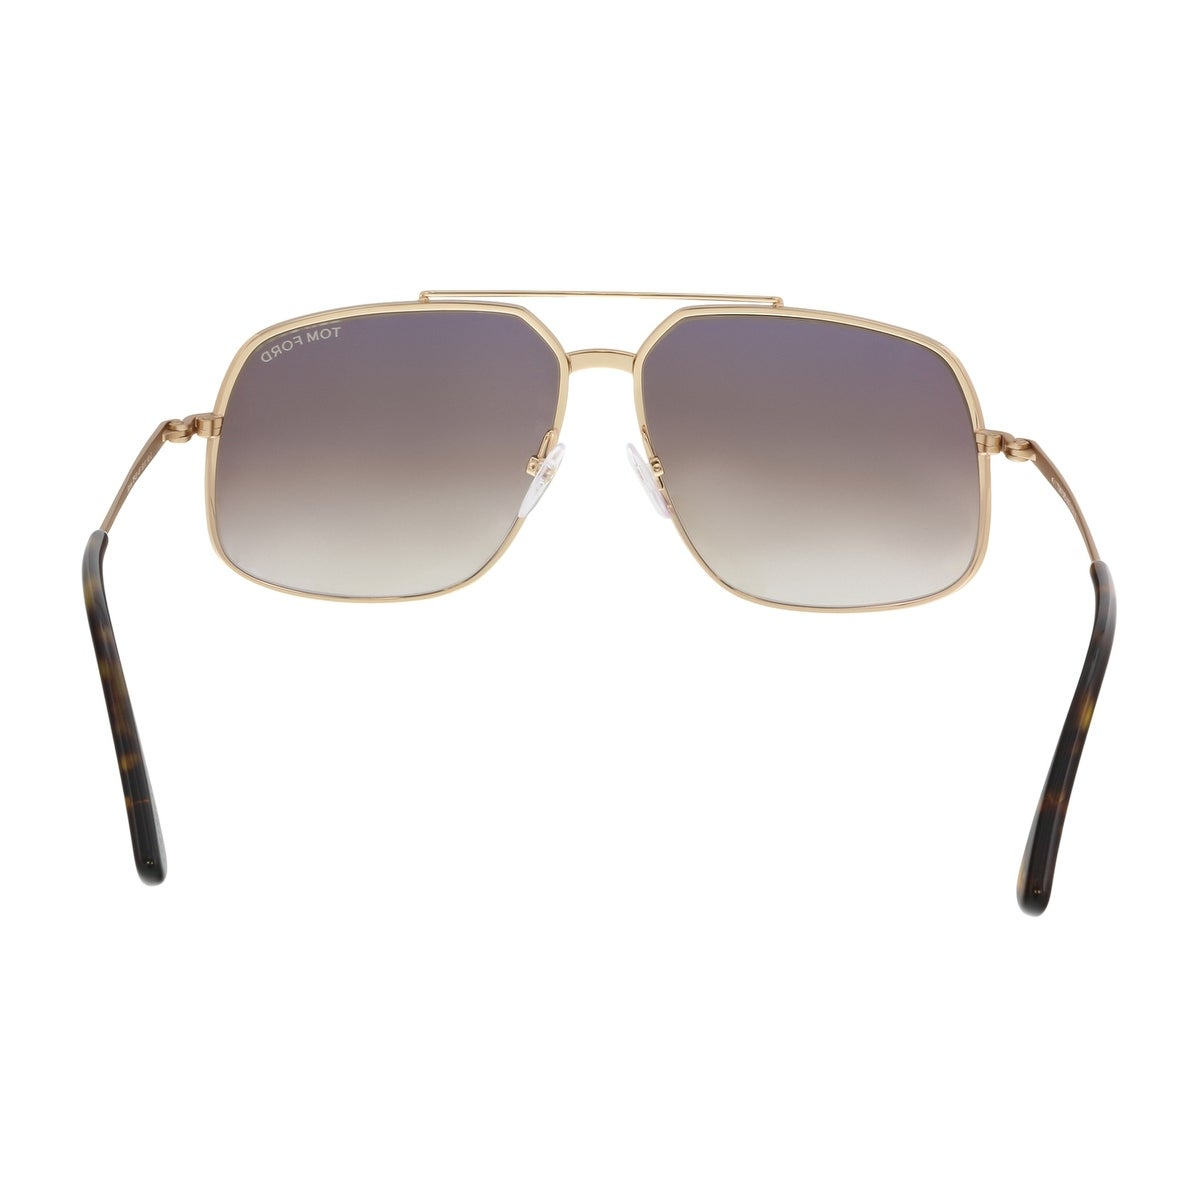 84064085b3 Shop Tom Ford FT0439 S 48F RONNIE Gold Brown Oversized Square Sunglasses -  60-13-140 - Free Shipping Today - Overstock - 19223099